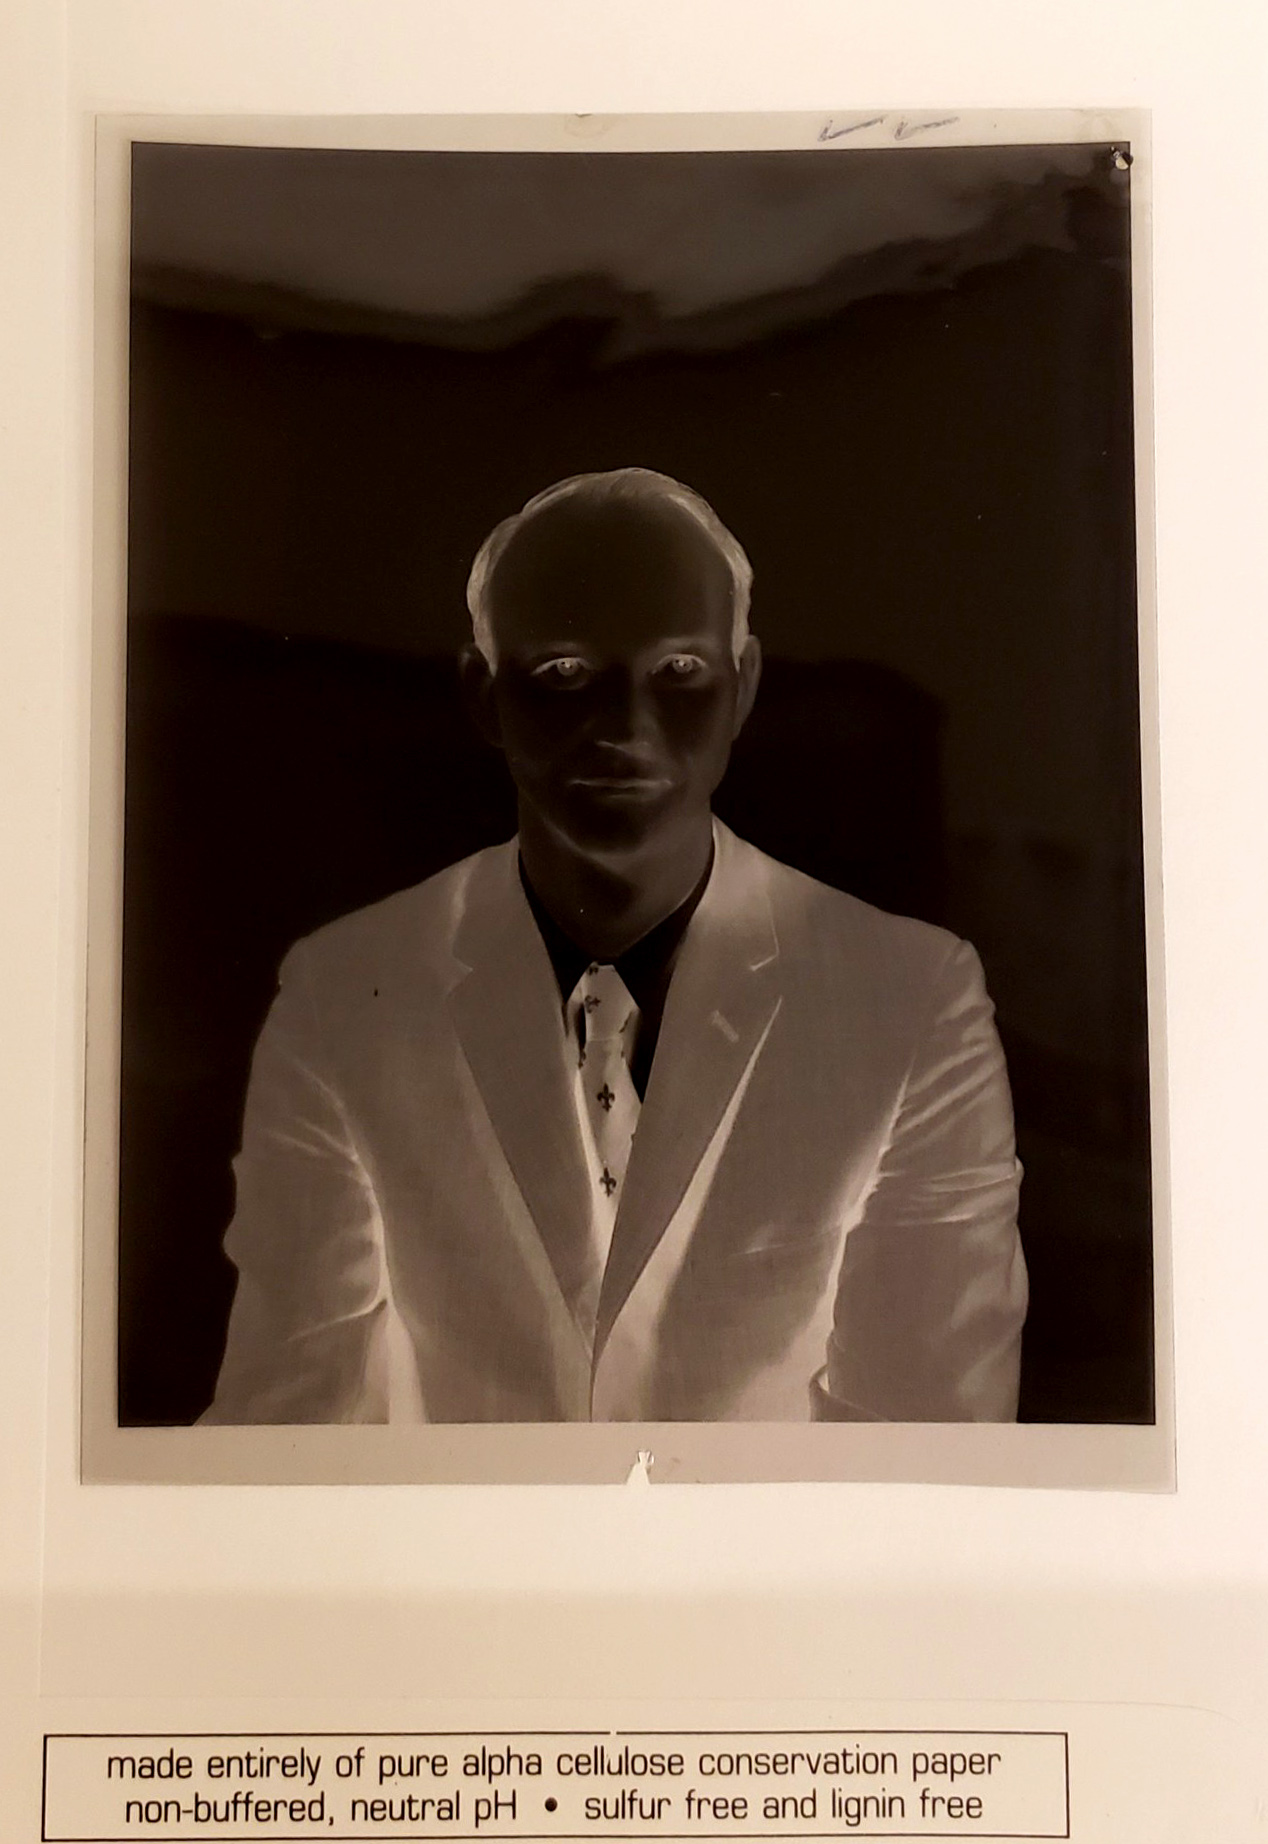 Negative of a portrait of a man in a suit.